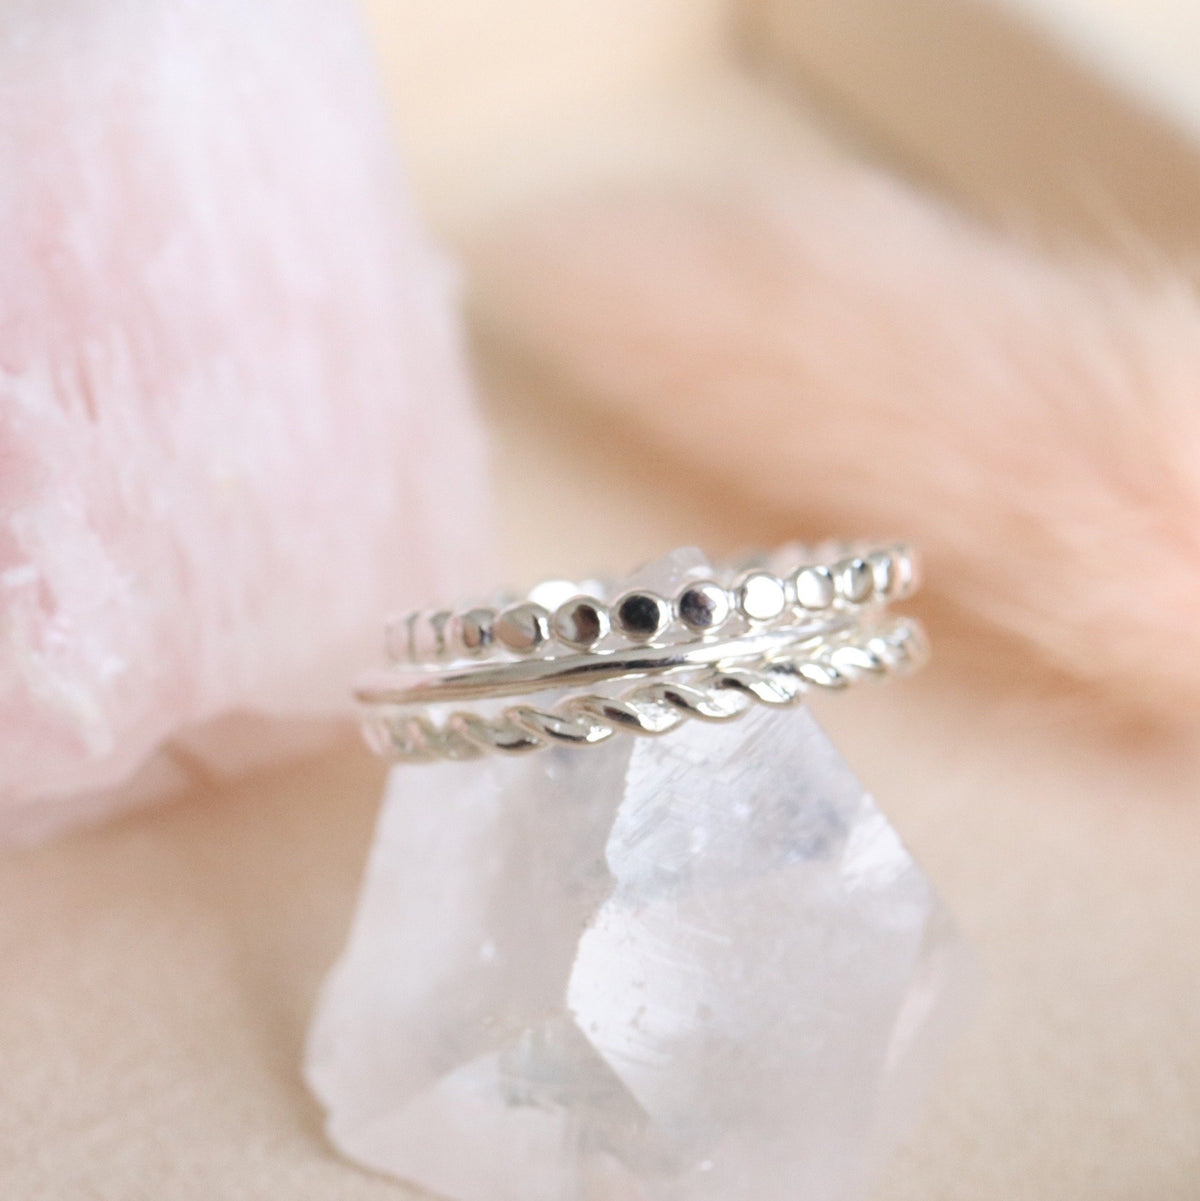 POISE THIN DISK BAND RING - SILVER - SO PRETTY CARA COTTER